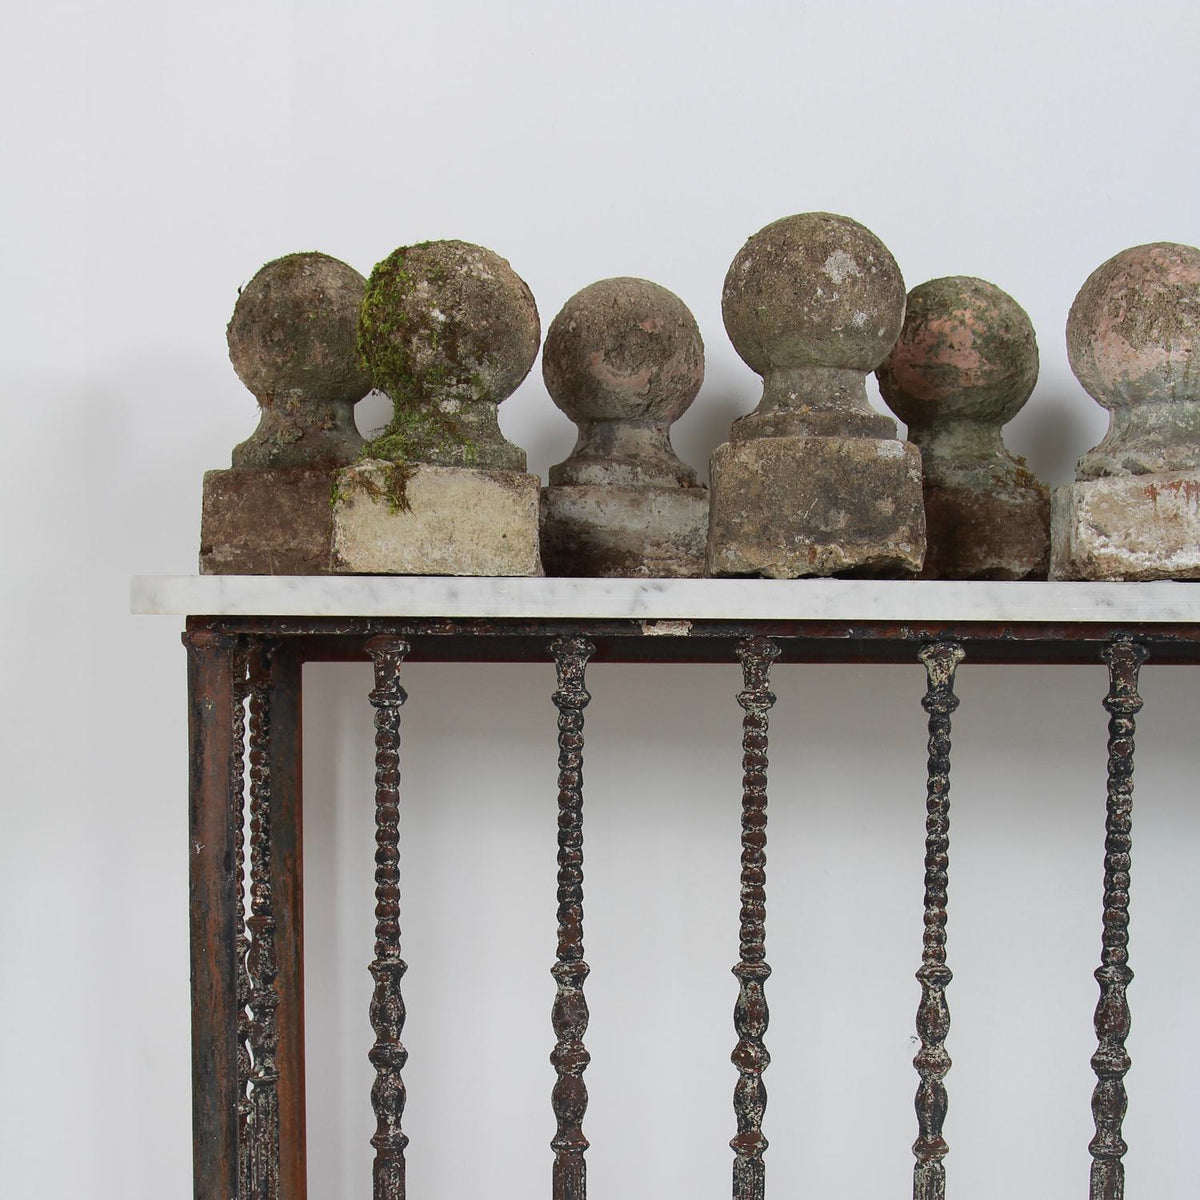 Collection of Decorative Lichen Encrusted Composite Garden Balls